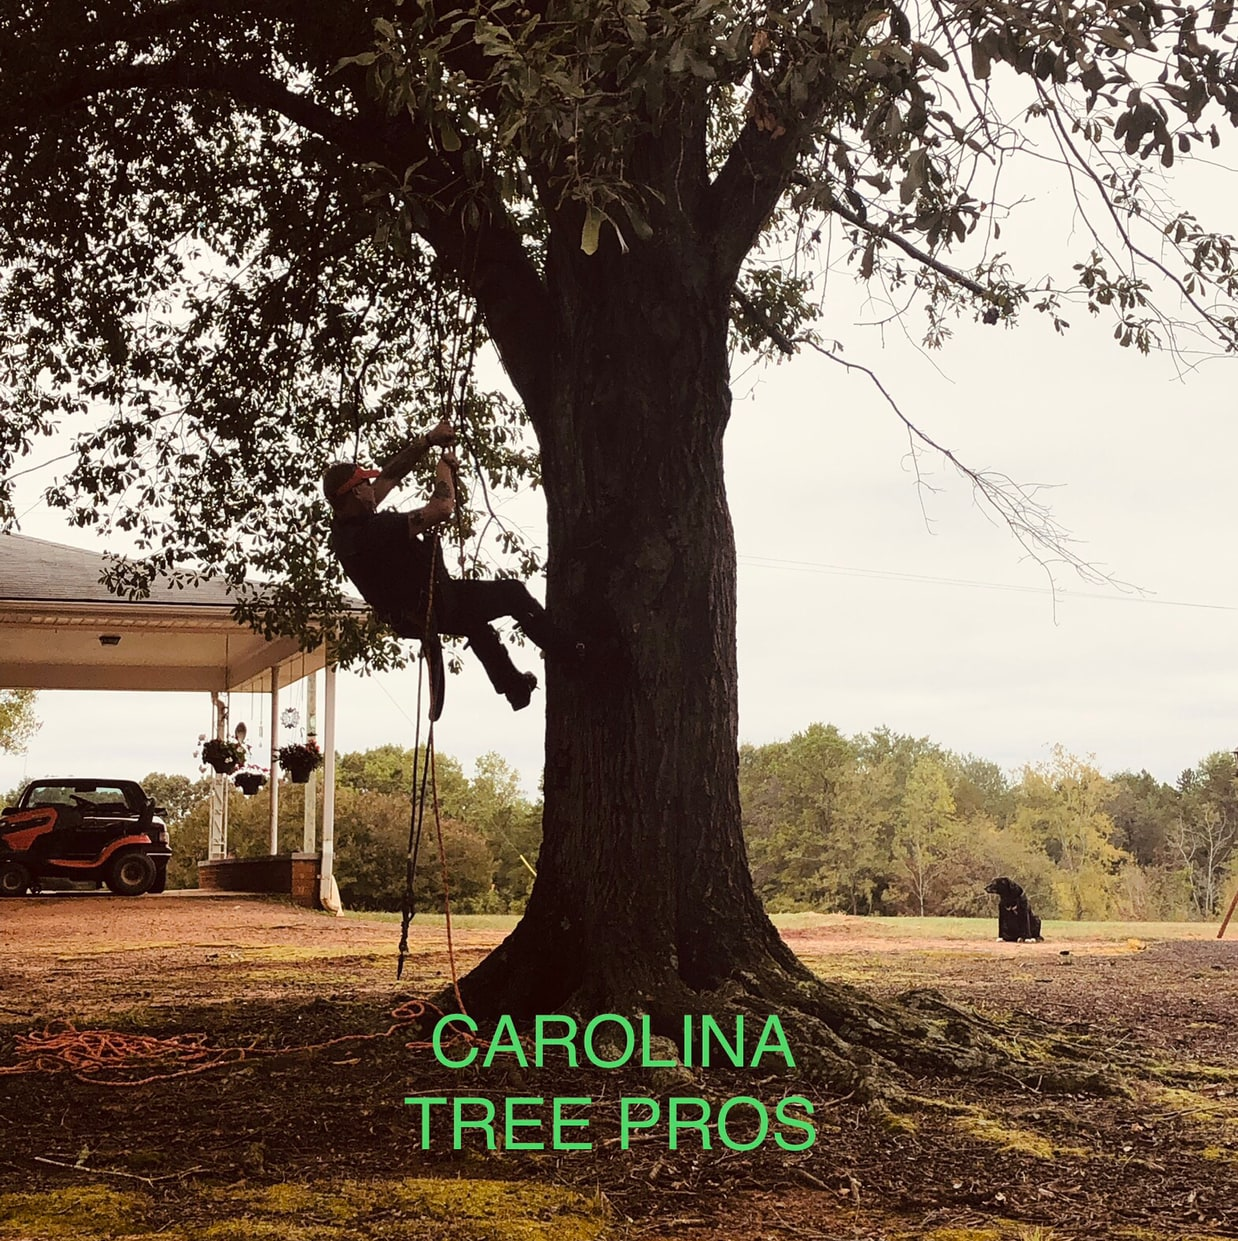 Carolina Tree Pros